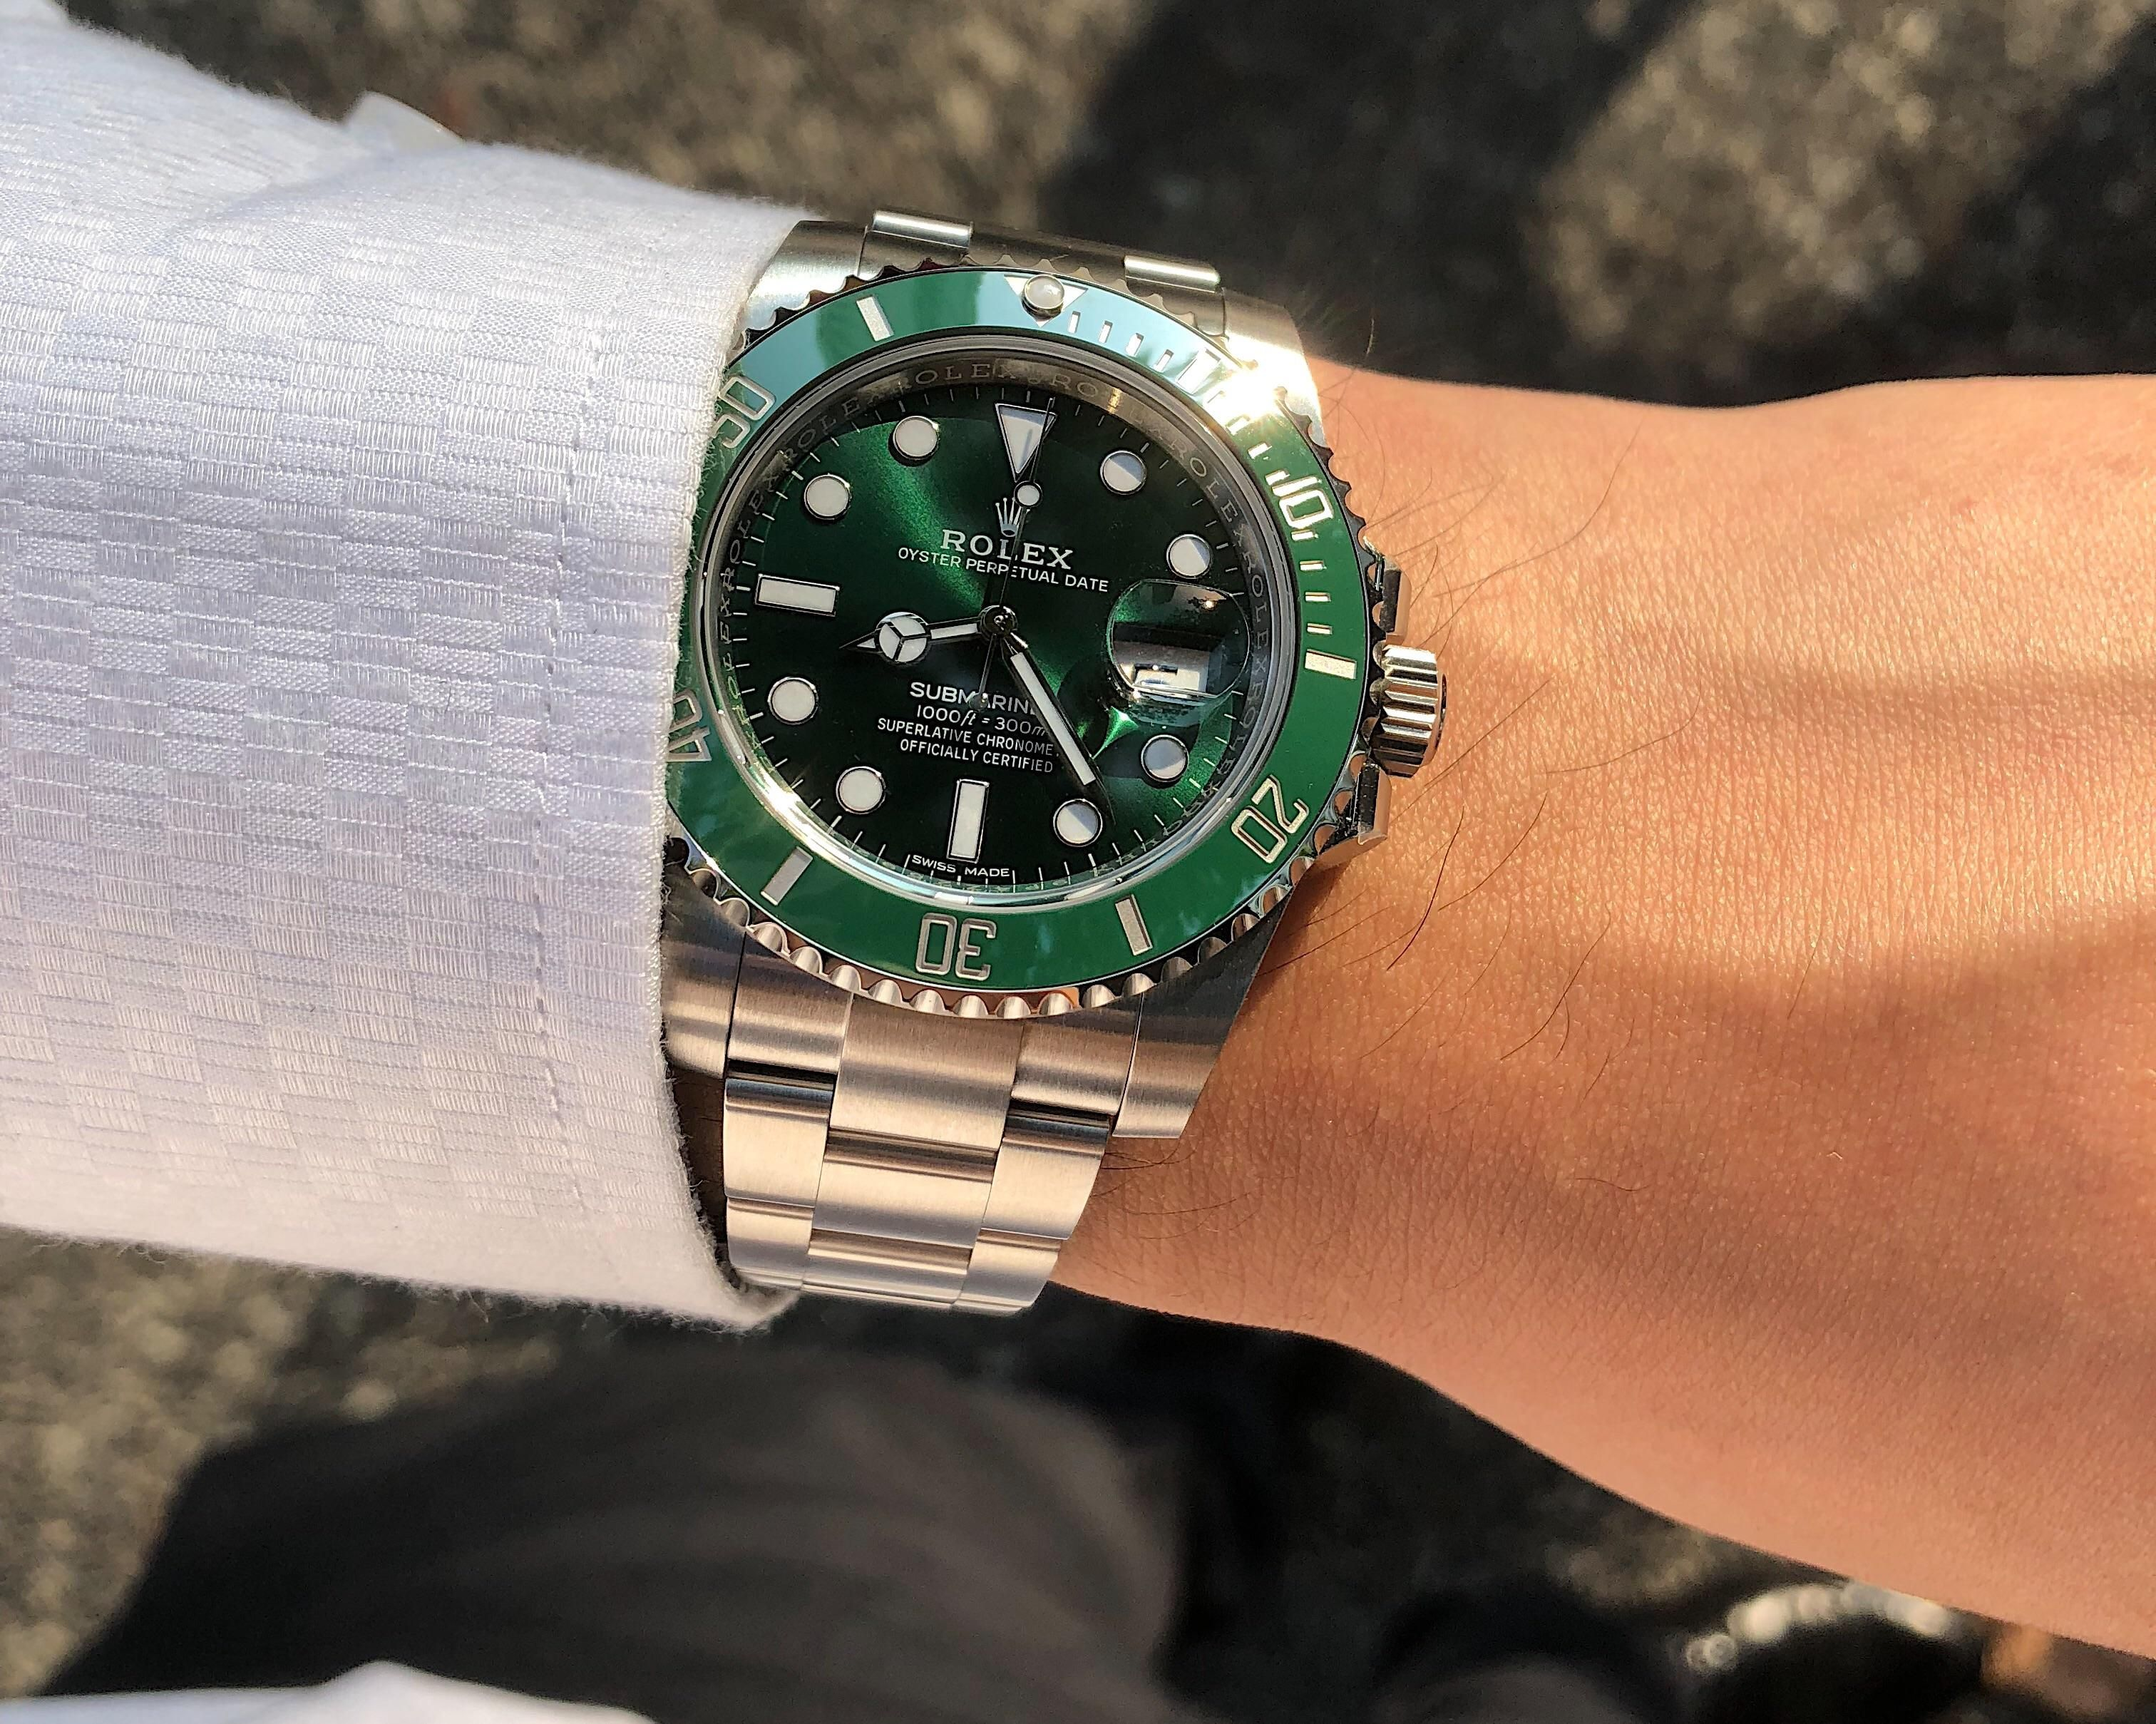 Rolex Submariner Date Hulk] never did believe the hype until